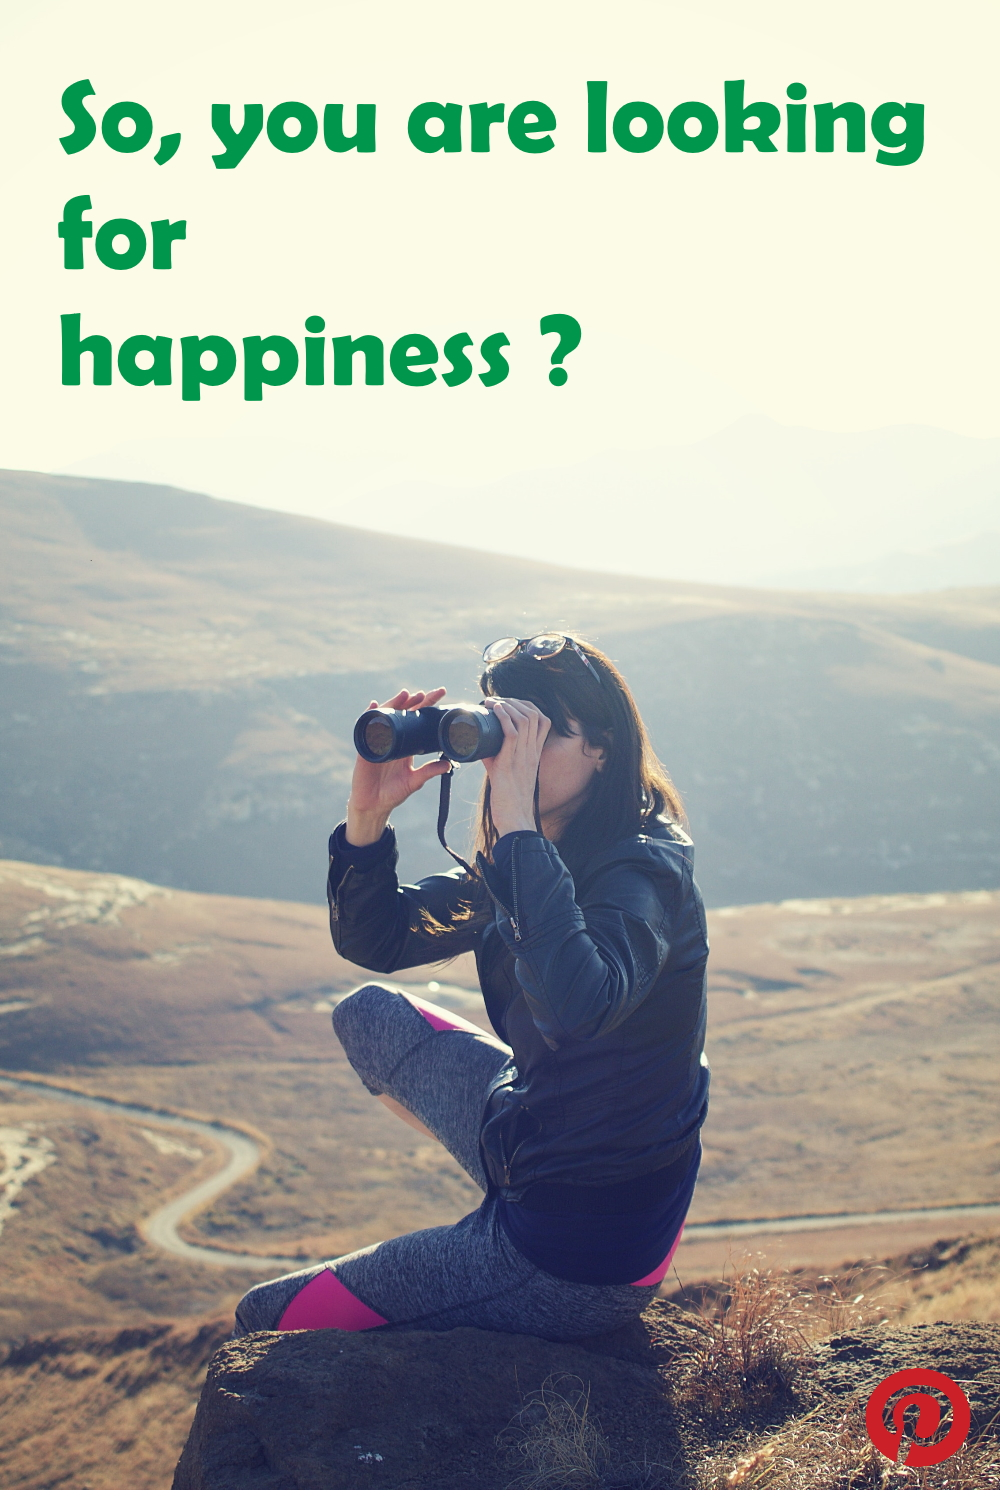 So – you are looking for happiness?